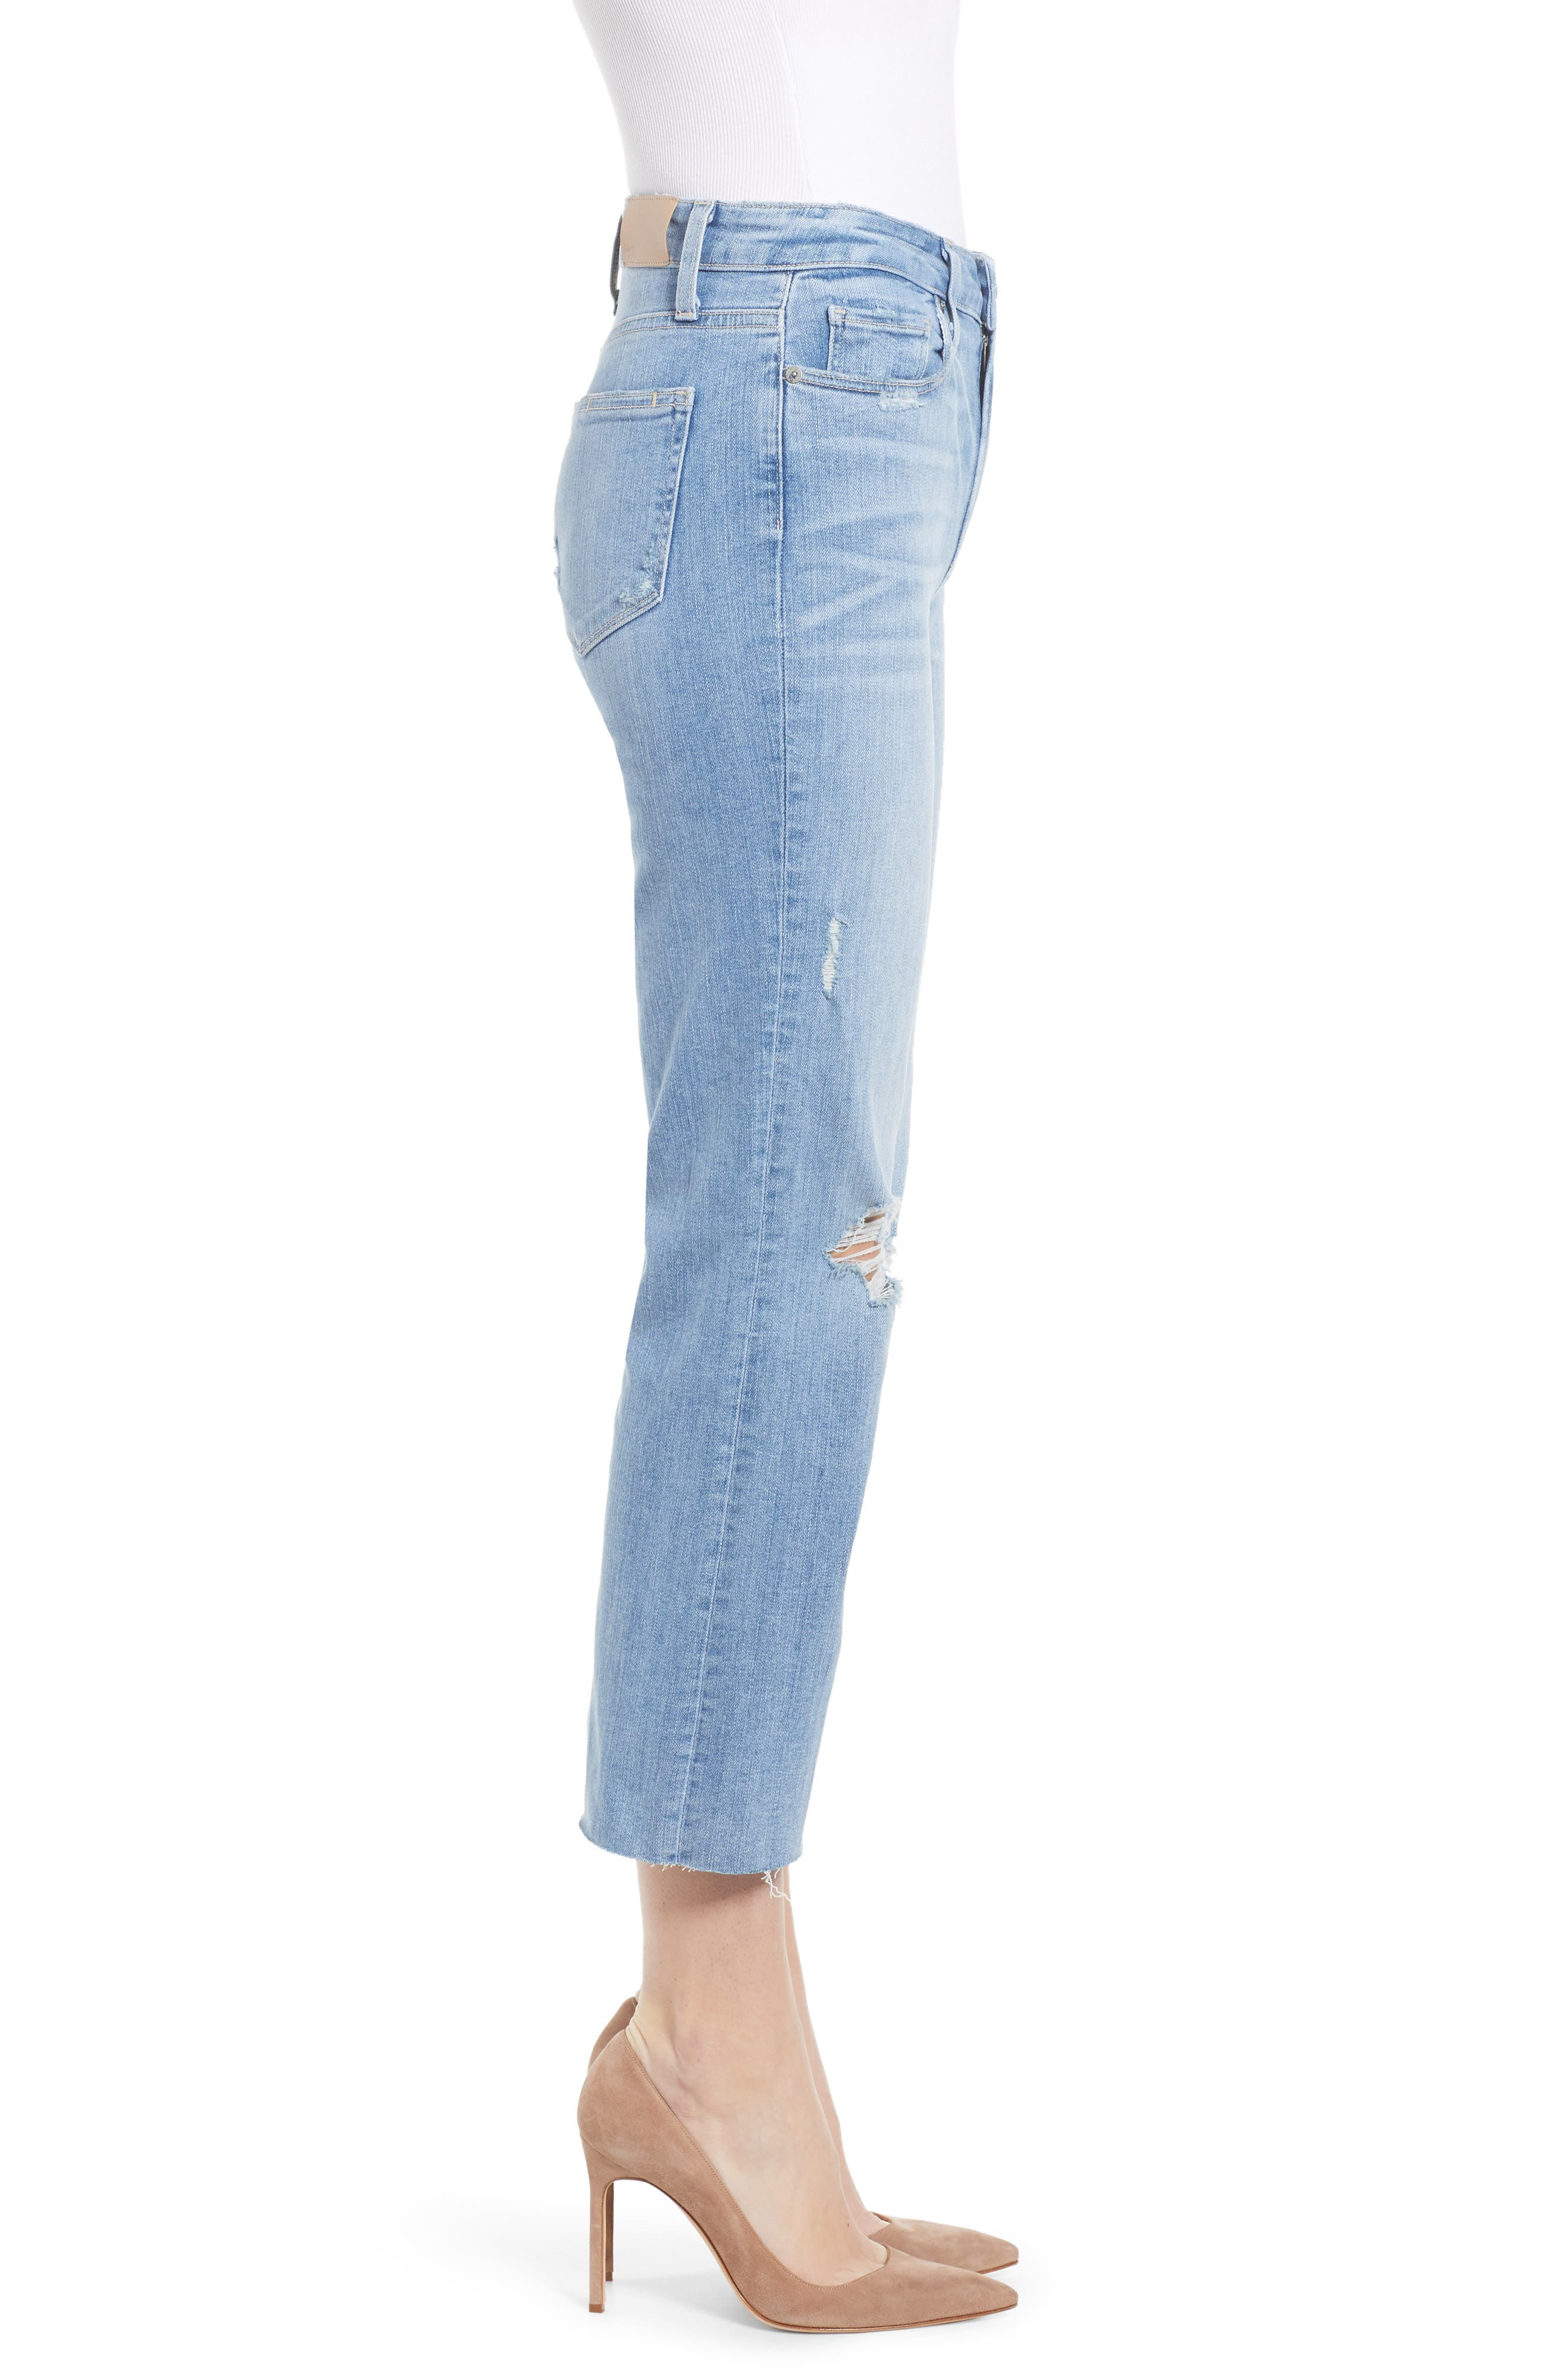 PAIGE, Atley Ripped Raw Hem Ankle Flare Jeans, Alternate thumbnail 4, color, FLORETTA DESTRUCTED